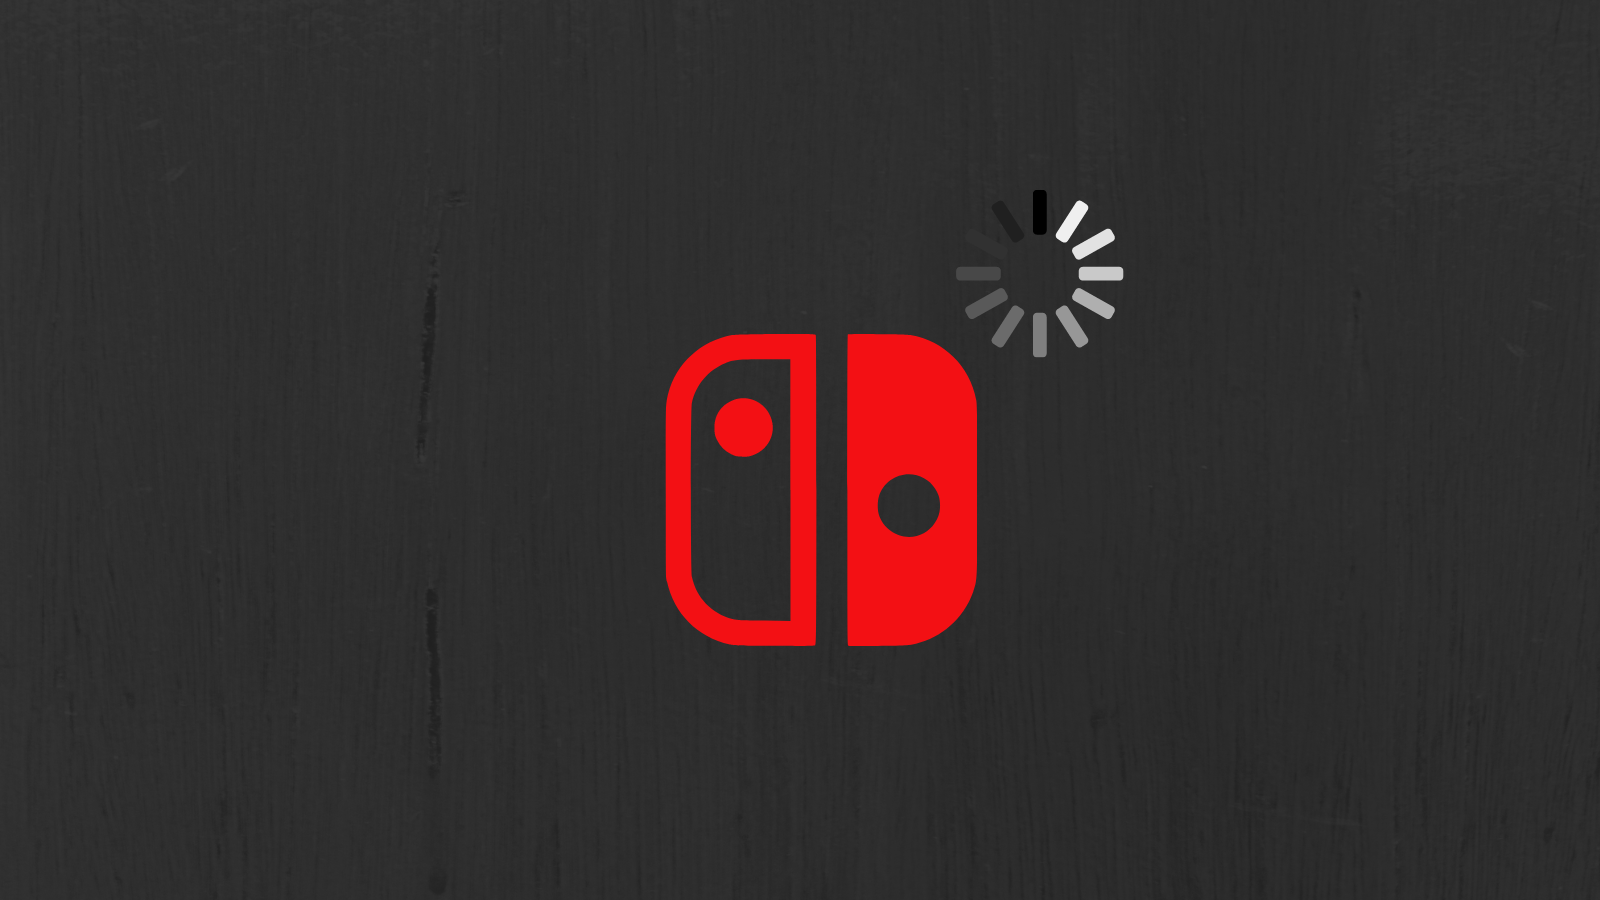 How to Fix Nintendo Switch Not Connecting To WiFi?